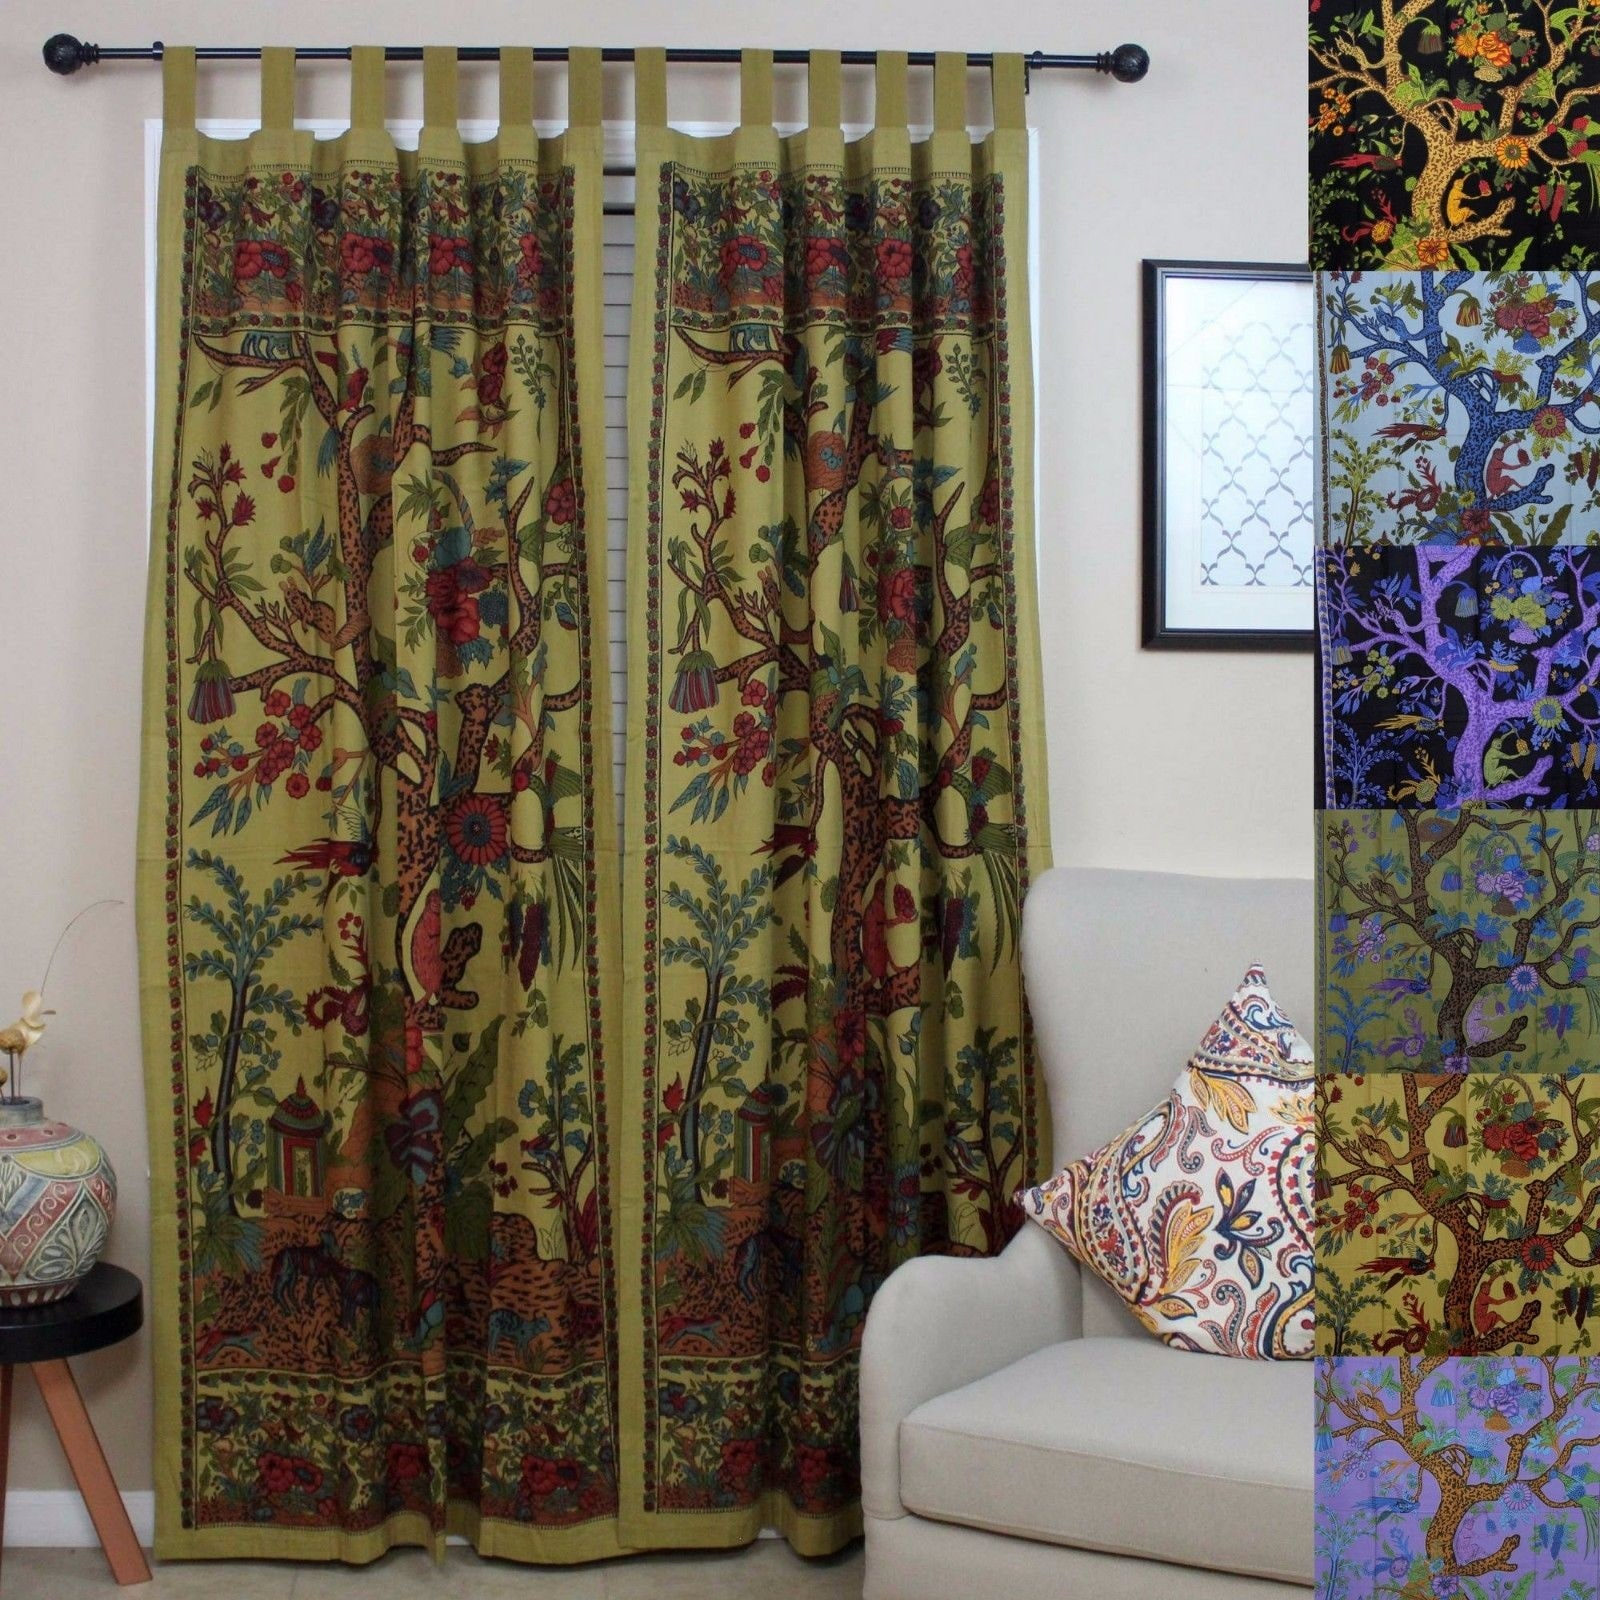 Handmade 100% Cotton Tree of Life Tab Top Curtain Drape Panel - 8 Color options - Black Gold Blue Purple Tan - 44 x 88 inches - Thumbnail 0